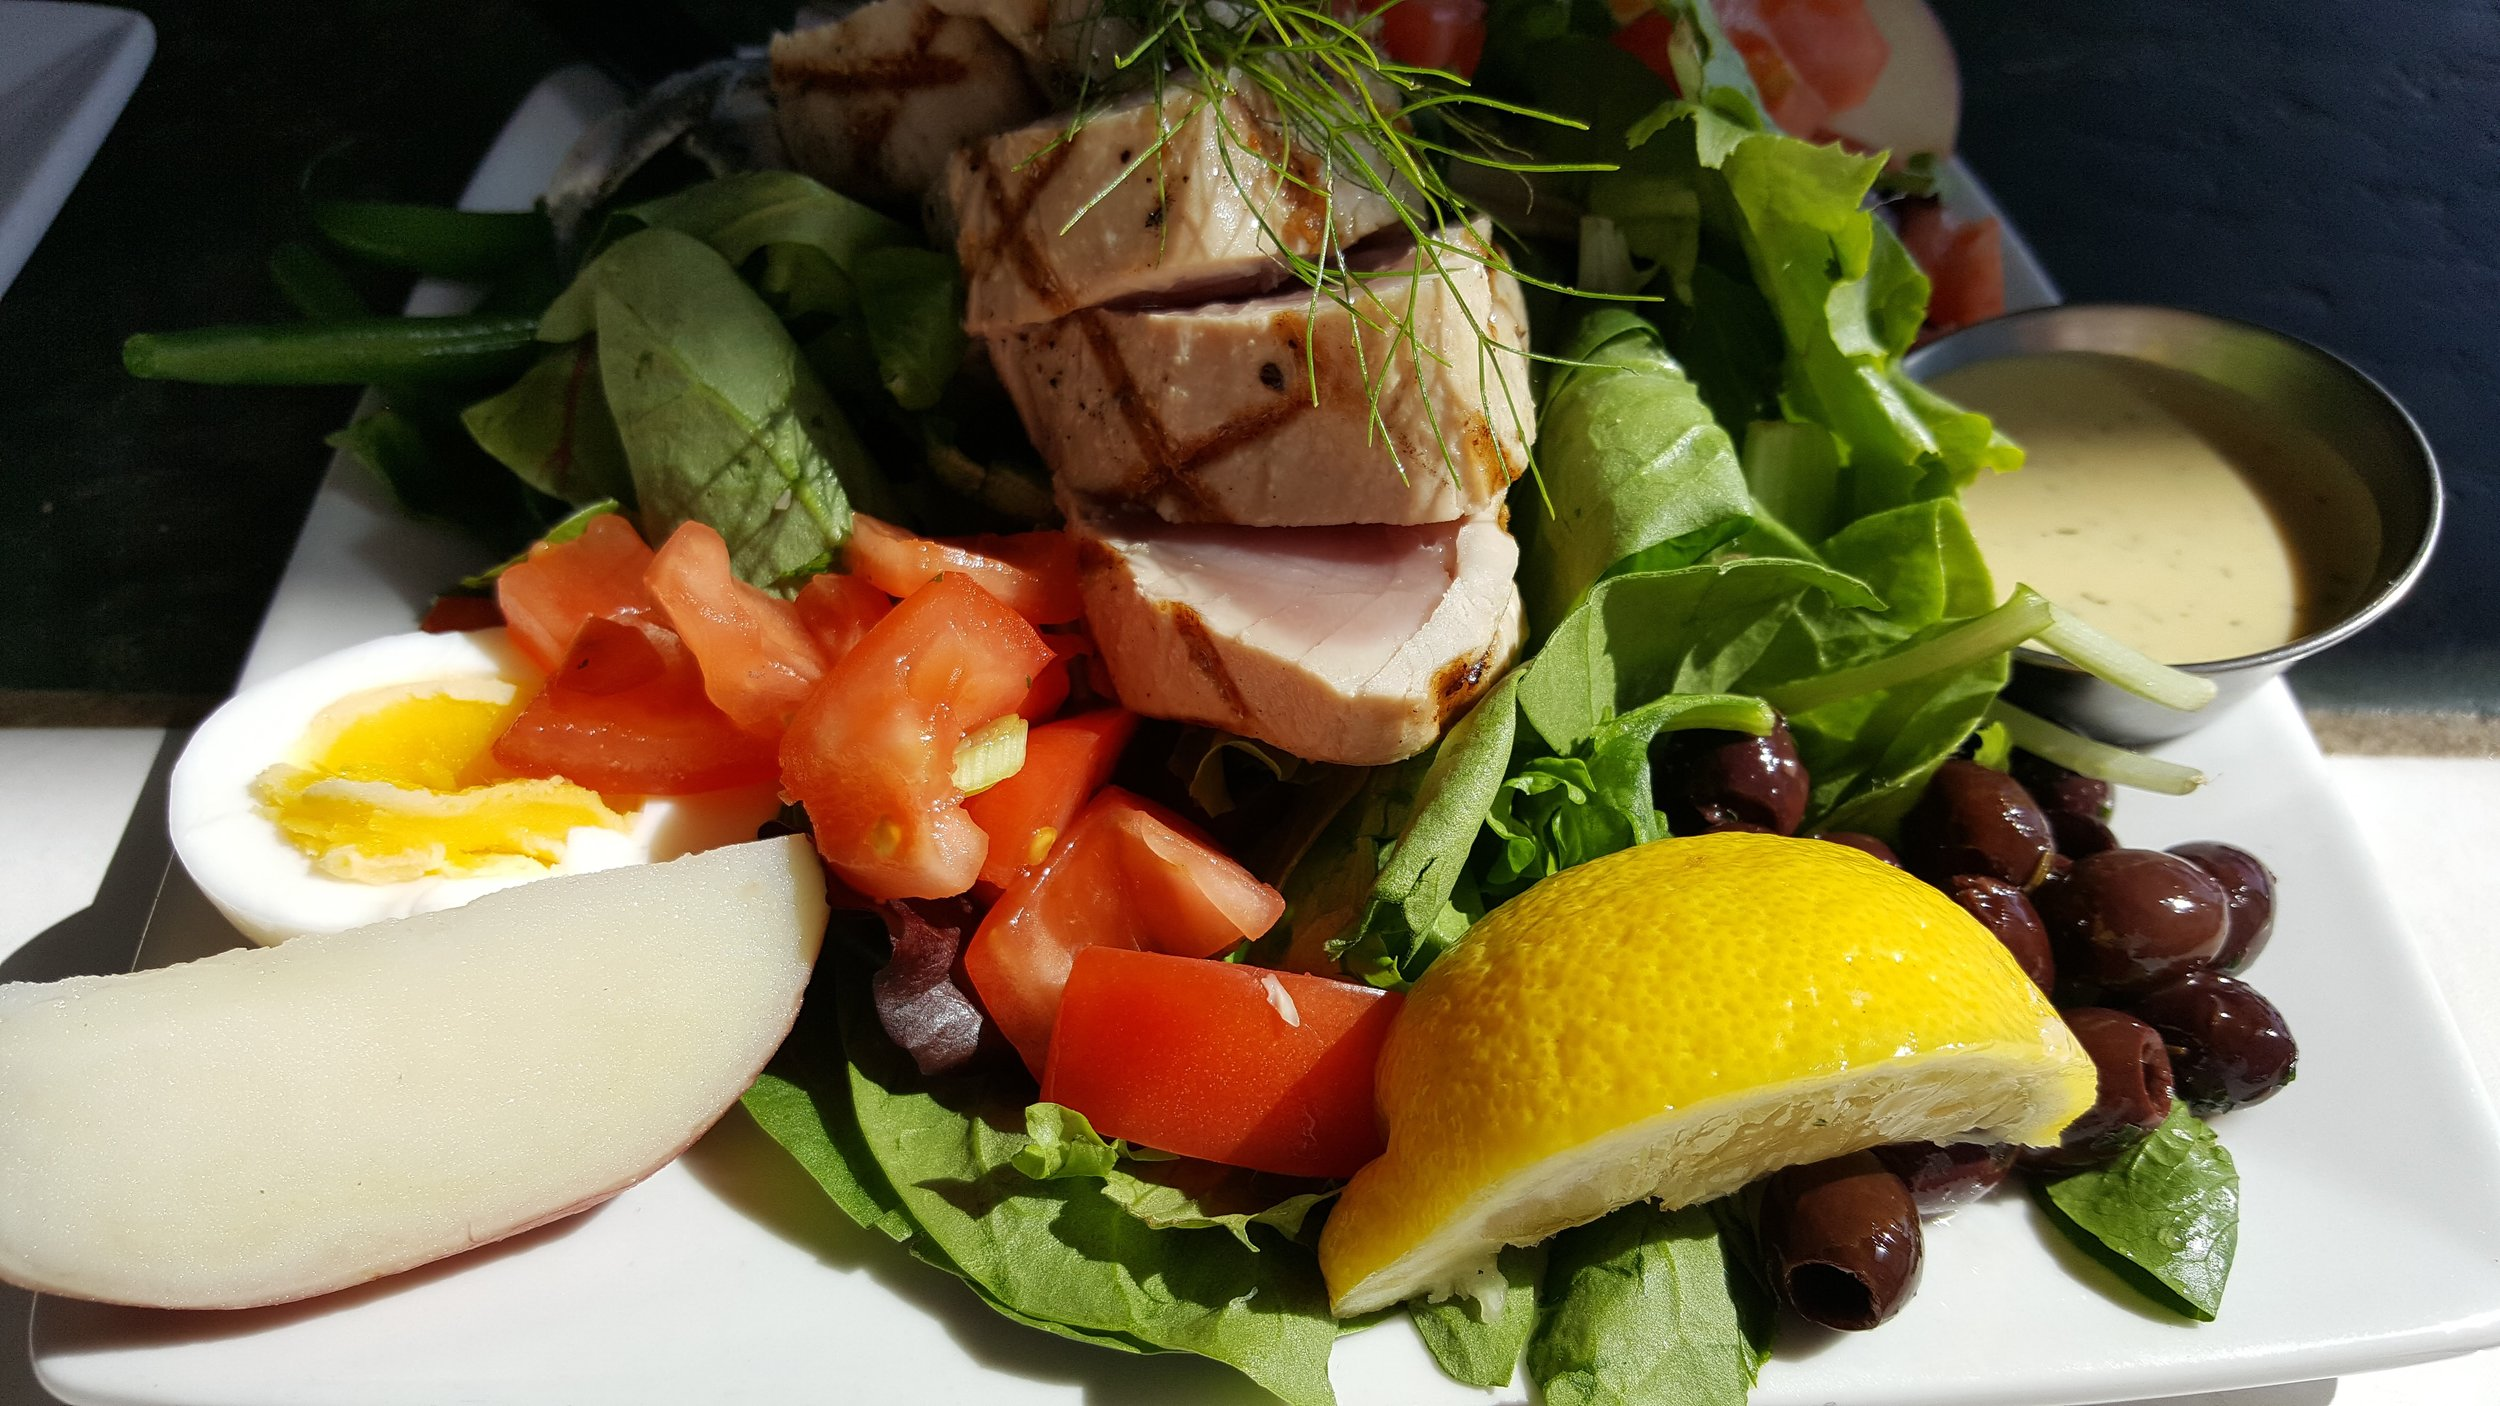 Lunch at one of my favorite restuarants along the Coast - Tuna Nicoise @ Local Seafoods- Newport, Oregon